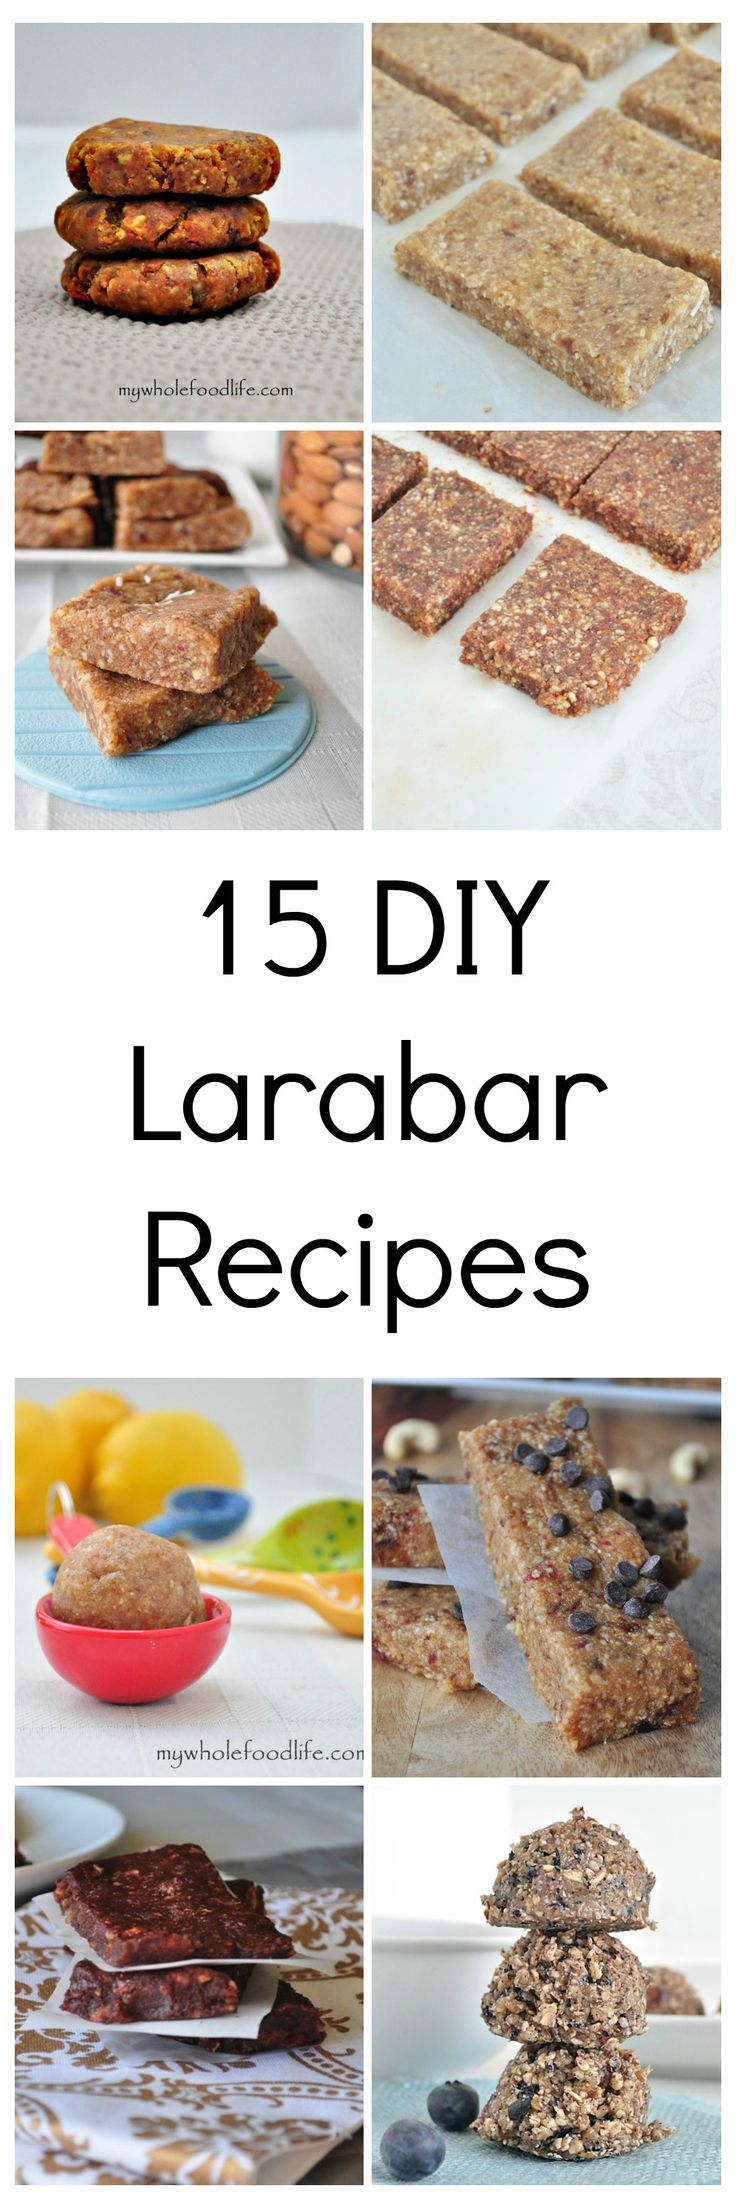 15 DIY Larabar recipes. Say goodbye to store bought forever.  Vegan, gluten free and paleo.